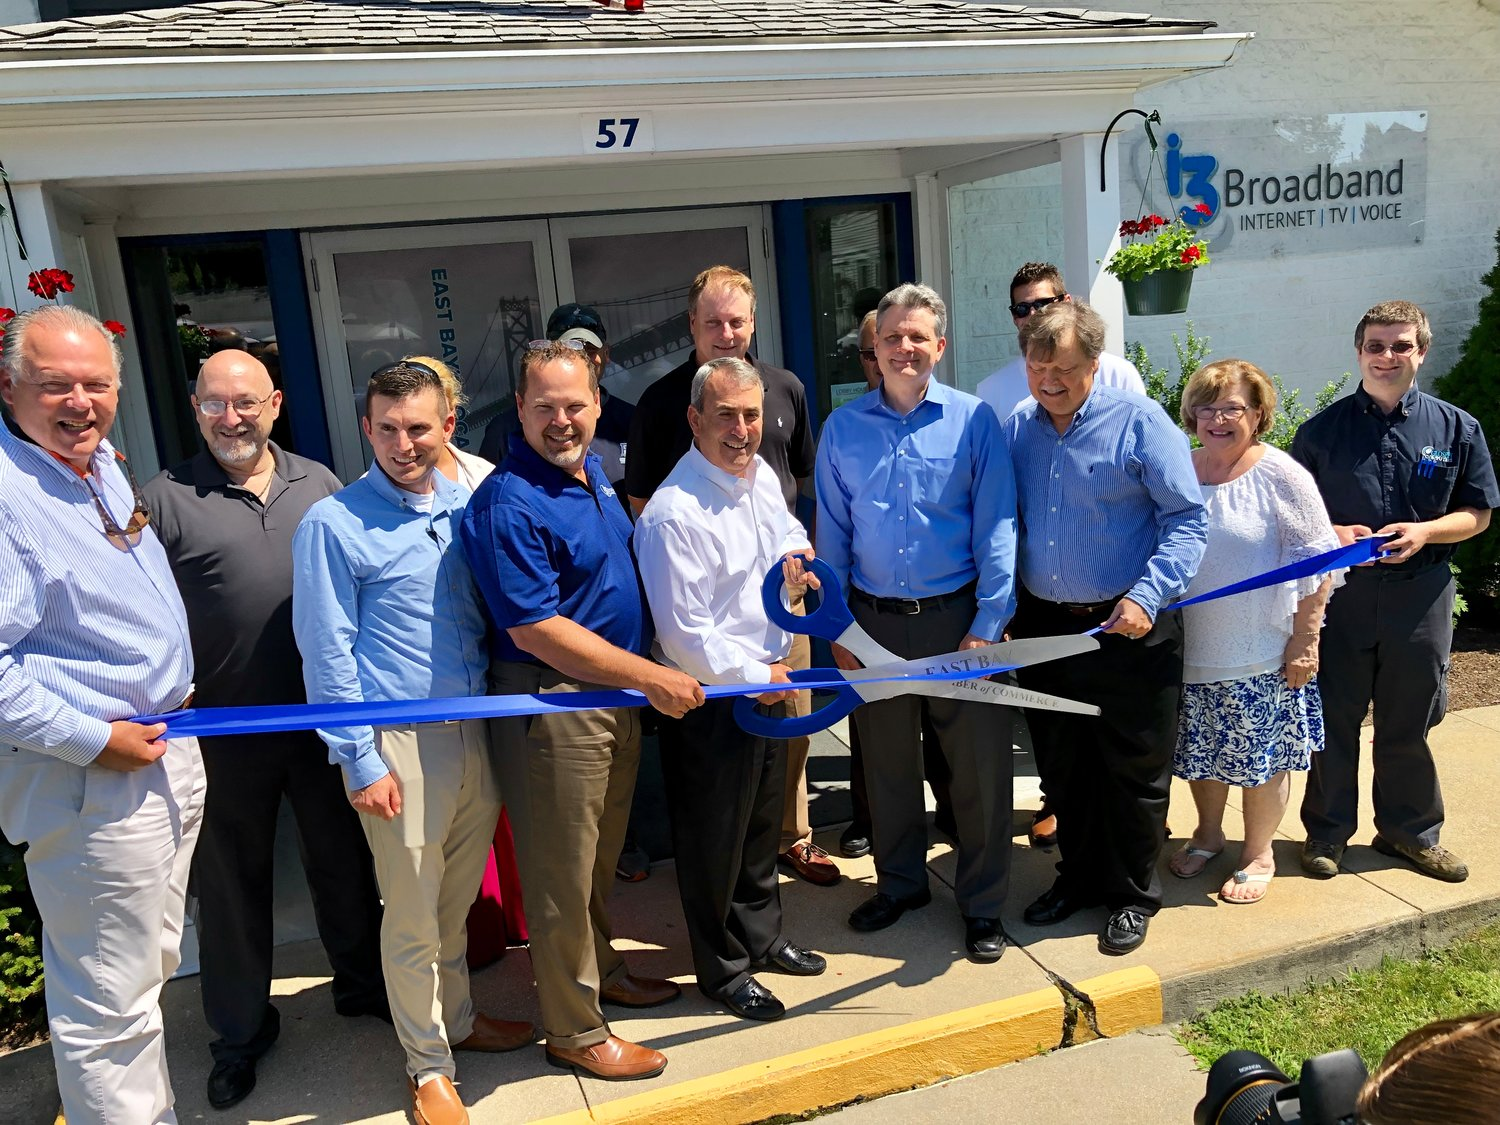 Sam Valencia (holding scissors) cuts the ribbon on the re-naming of Full Channel to i3 Broadband, Thursday afternoon in Warren.